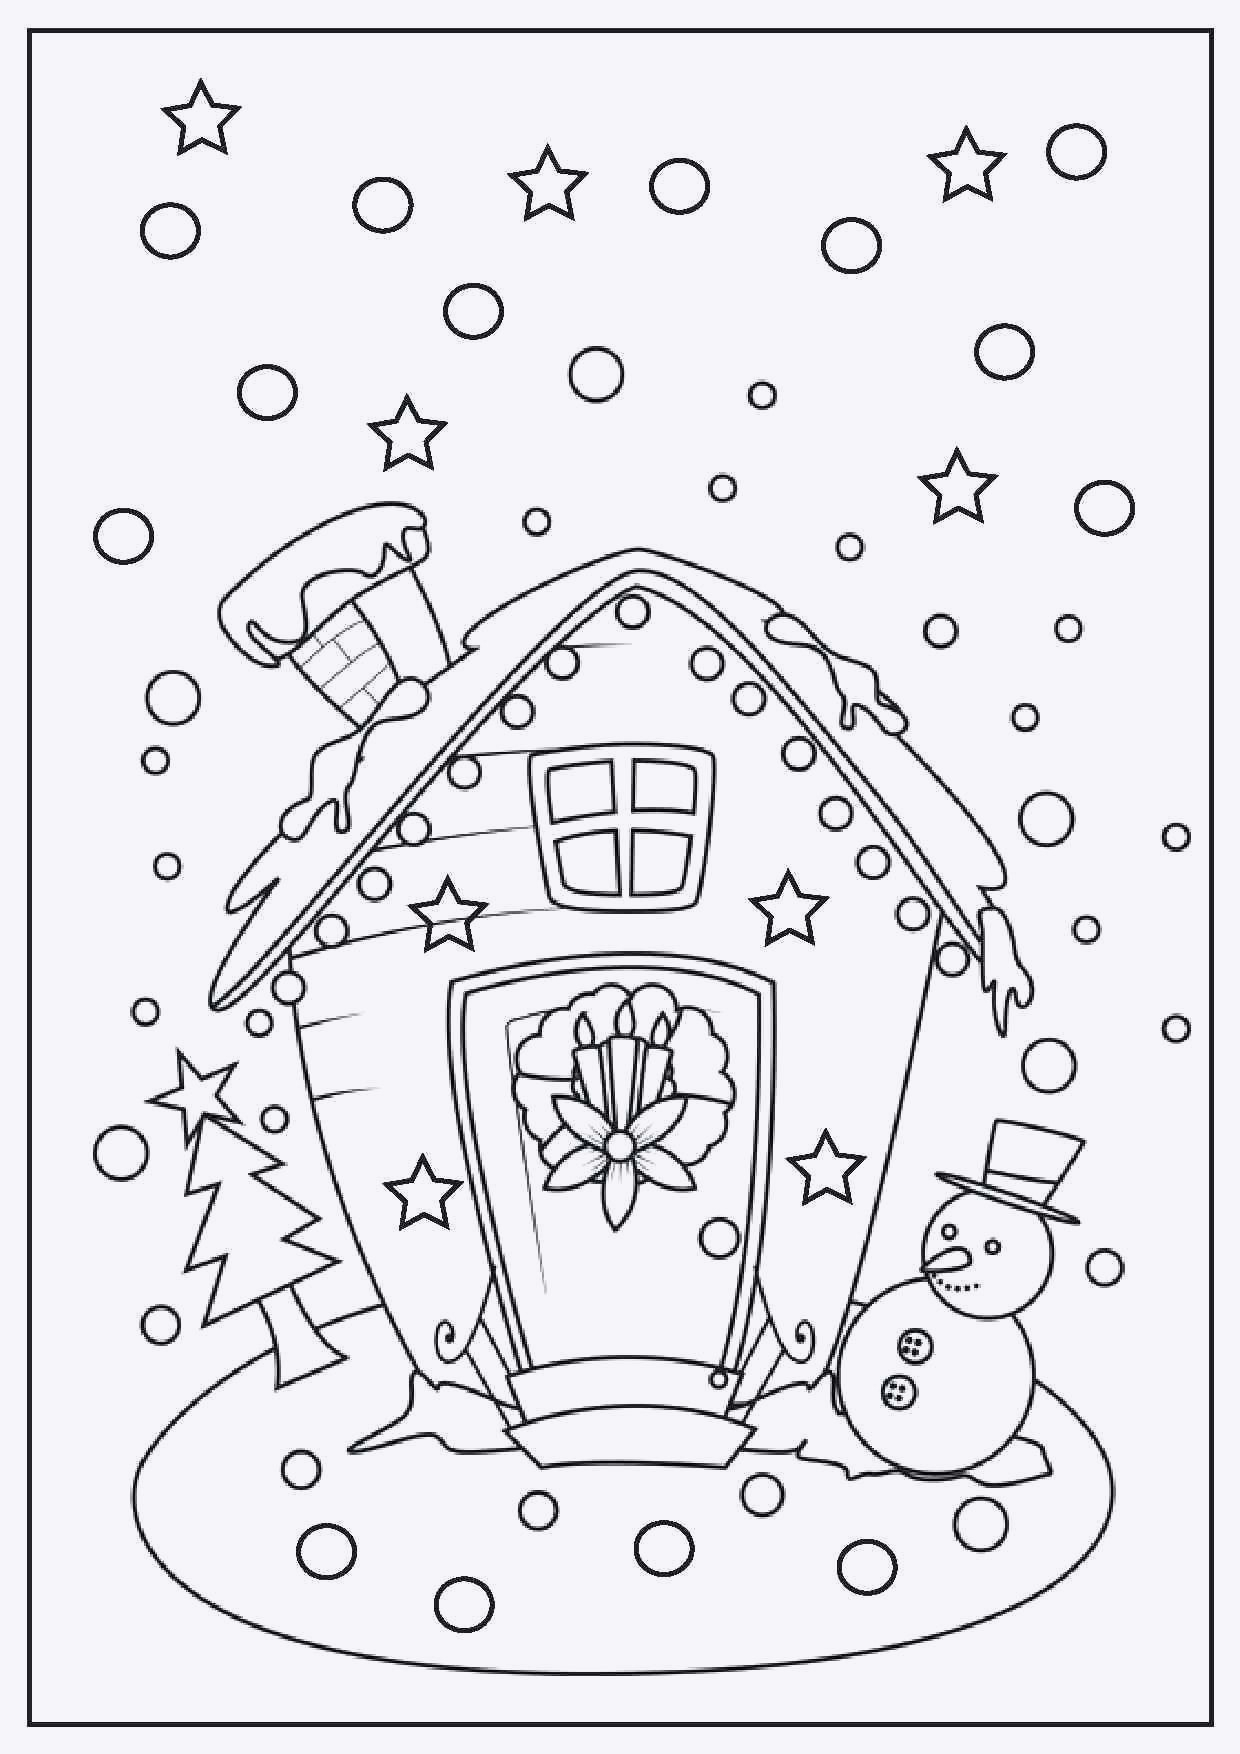 Parrot Coloring Pages  Gallery 10l - Free For Children